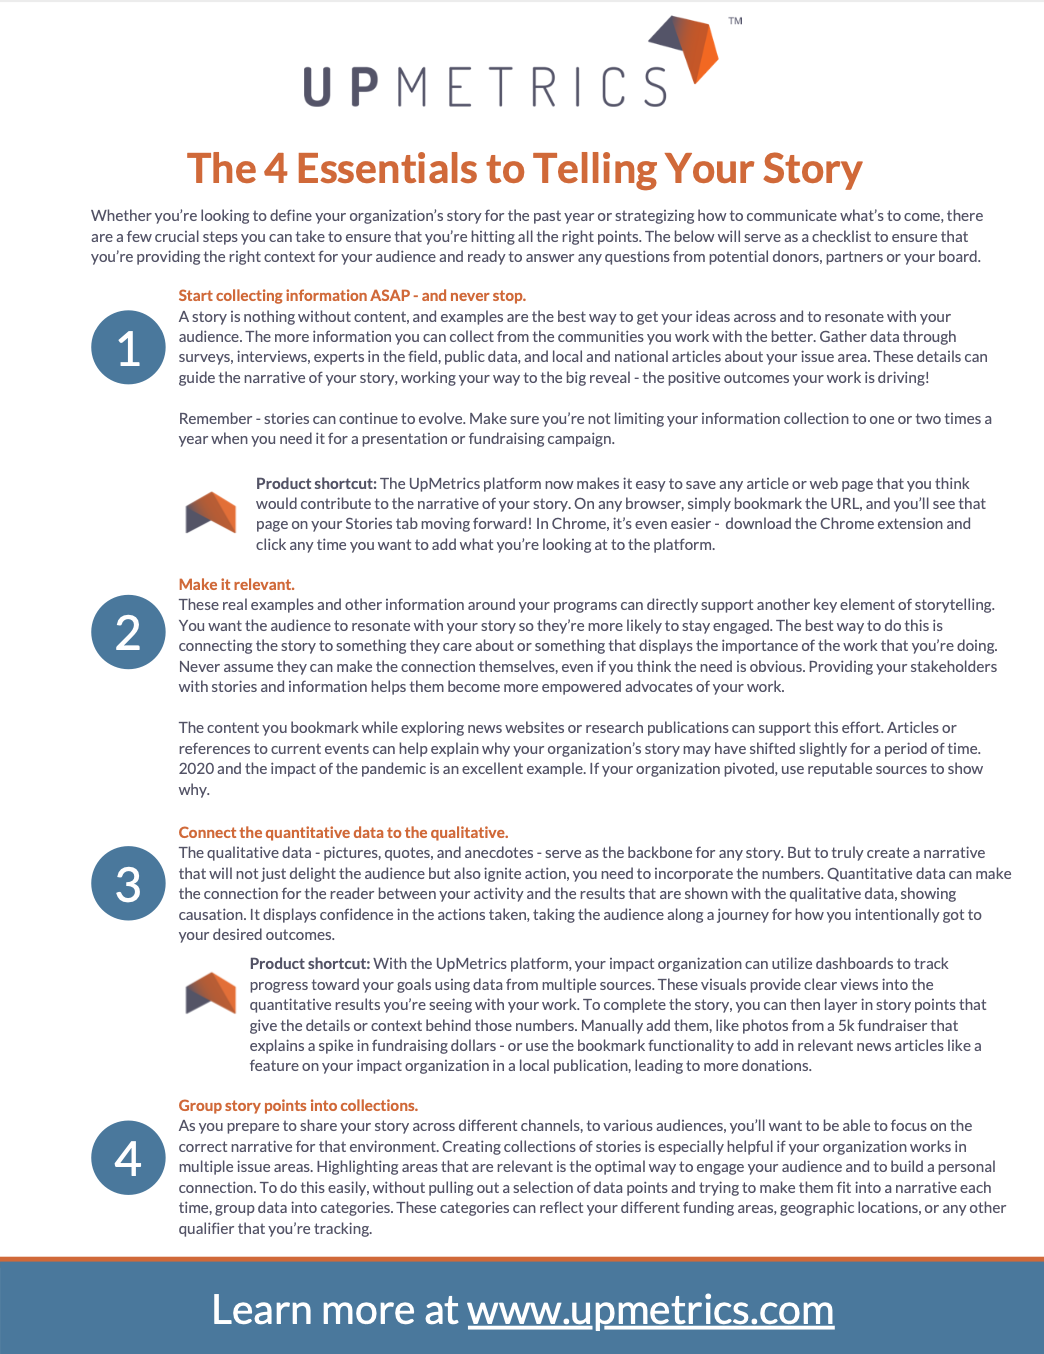 4 Essentials to Telling Your Story